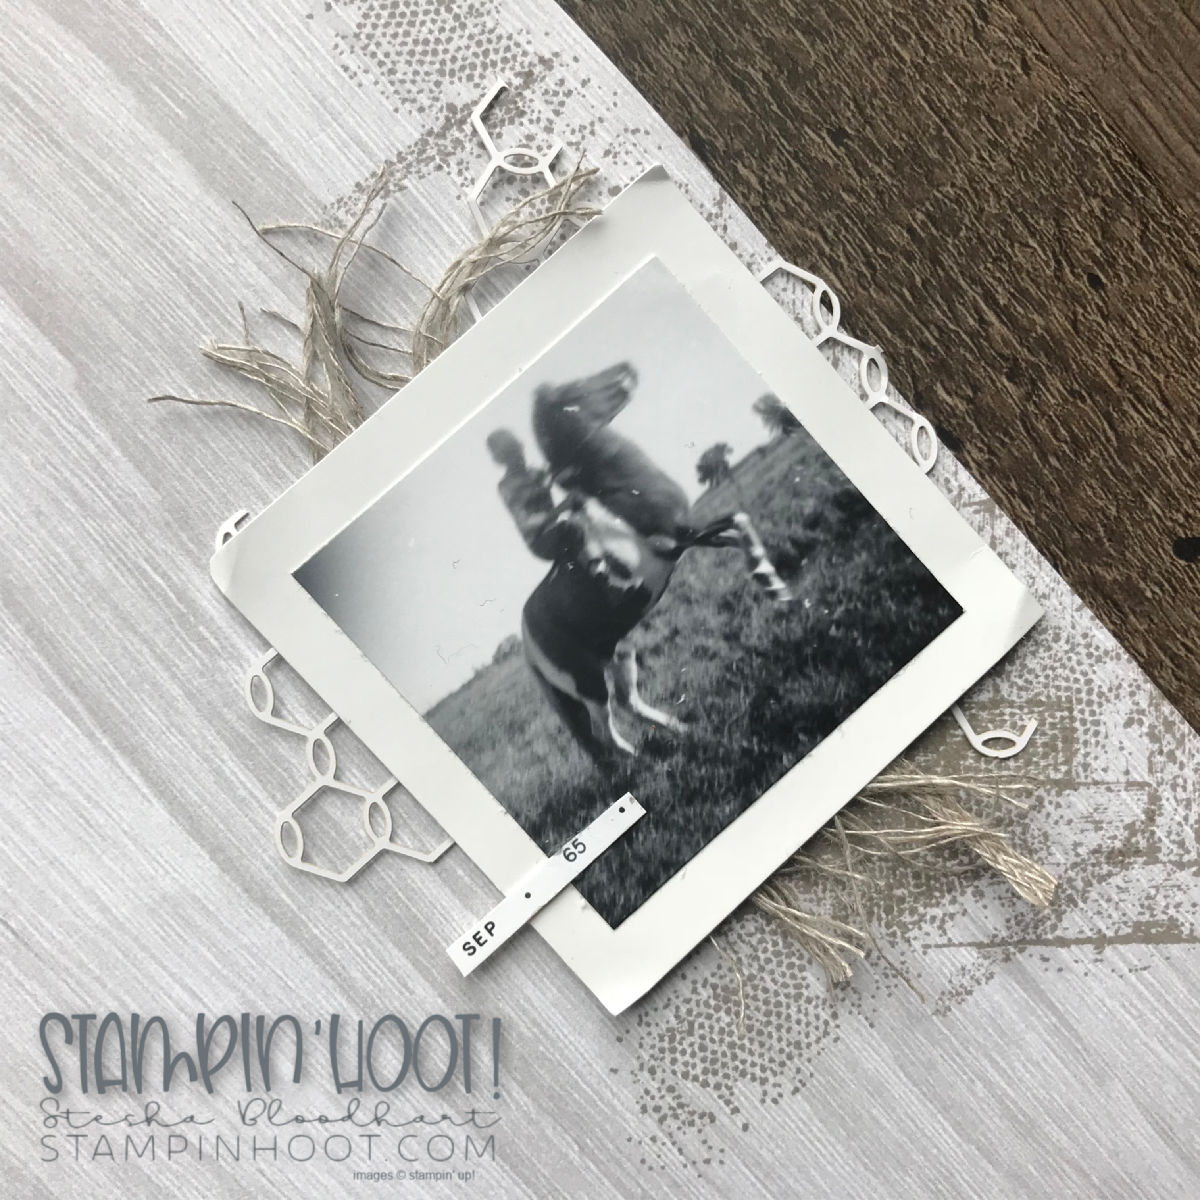 Scrapbooking Global Blog Hop September 2018 Theme Masculine, Layout created by Design Team Member Stesha Bloodhart, Stampin' Hoot! #steshabloodhart #stampinhoot